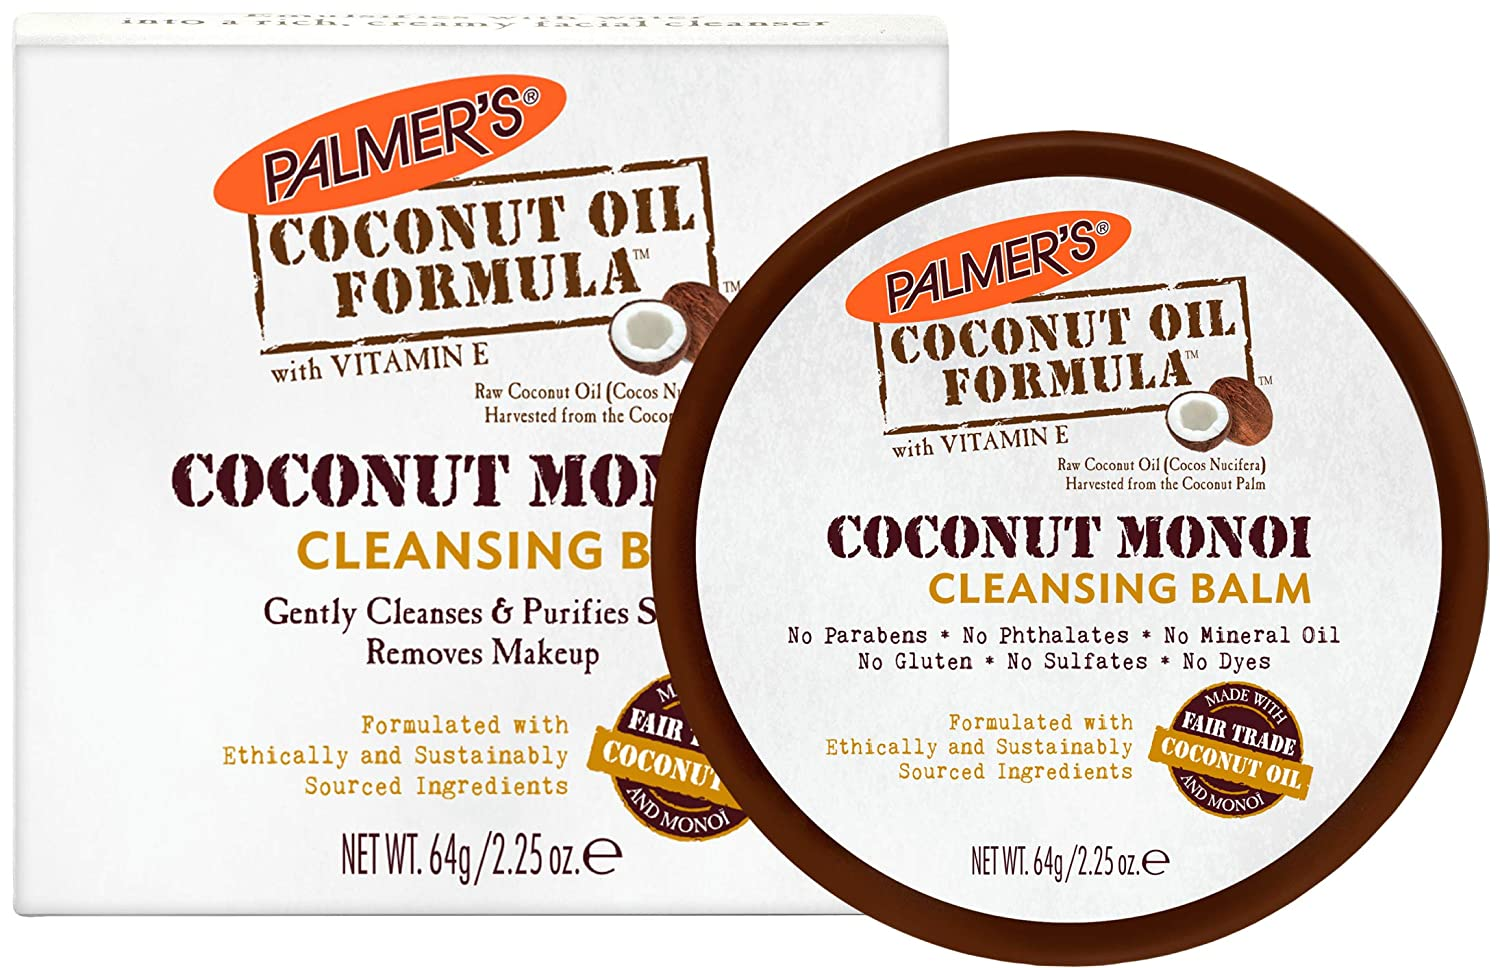 Palmer's Coconut Oil Formula, Coconut Monoi Facial Cleansing Balm | Gently Cleanses & Purifies Skin | Makeup Remover | Jar 2.25 oz